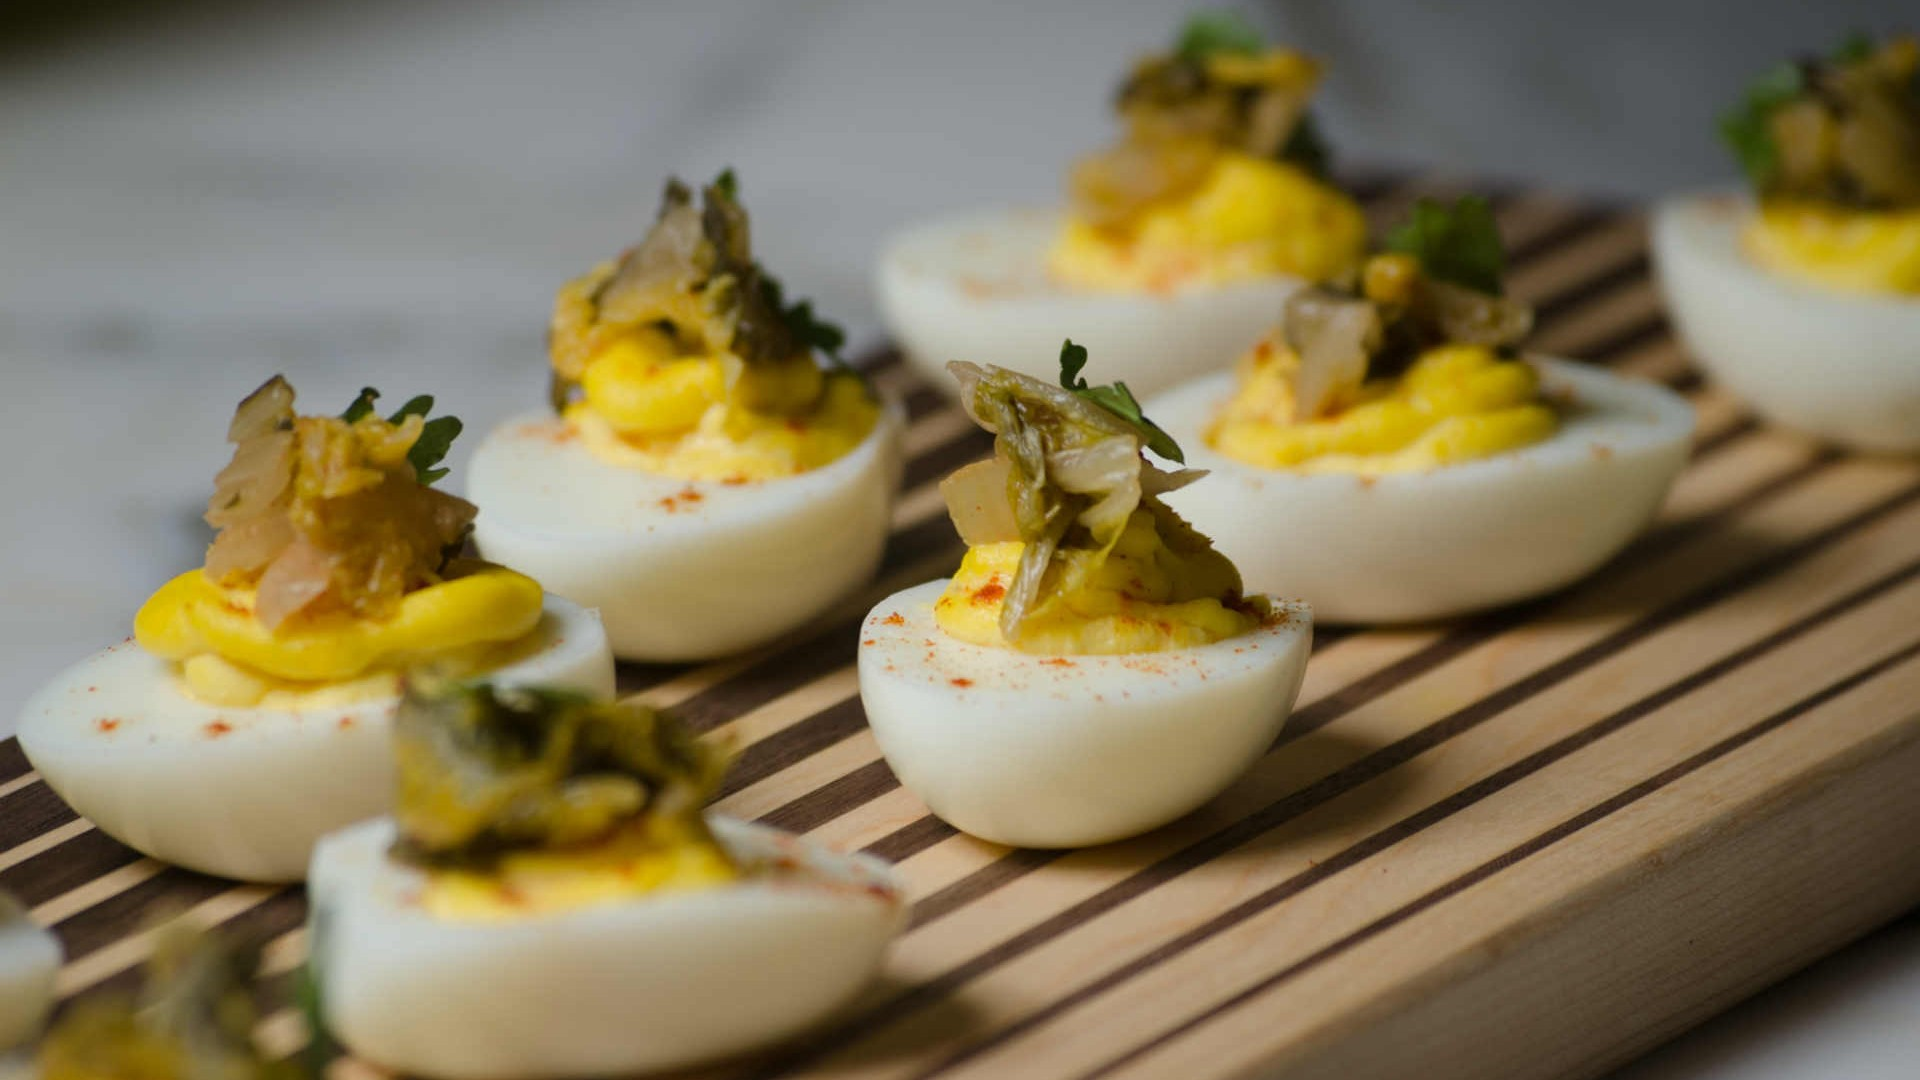 Mighty Fine Brine's Kraut-Chi deviled eggs